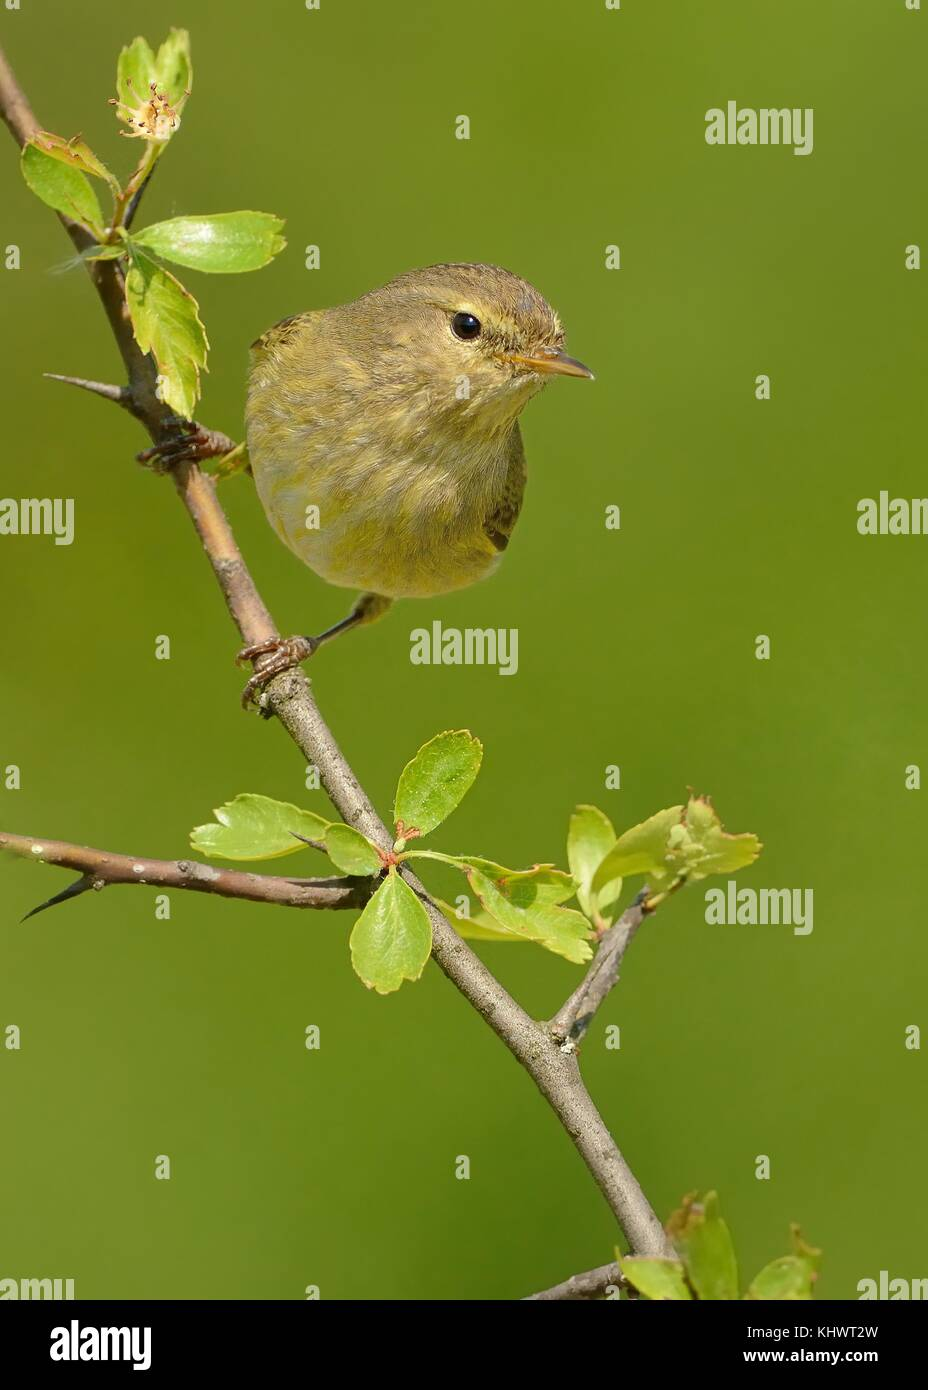 Common Chiffchaff (Phylloscopus collybita) sitting on the spring branch, green isolated background, portrait - Stock Image